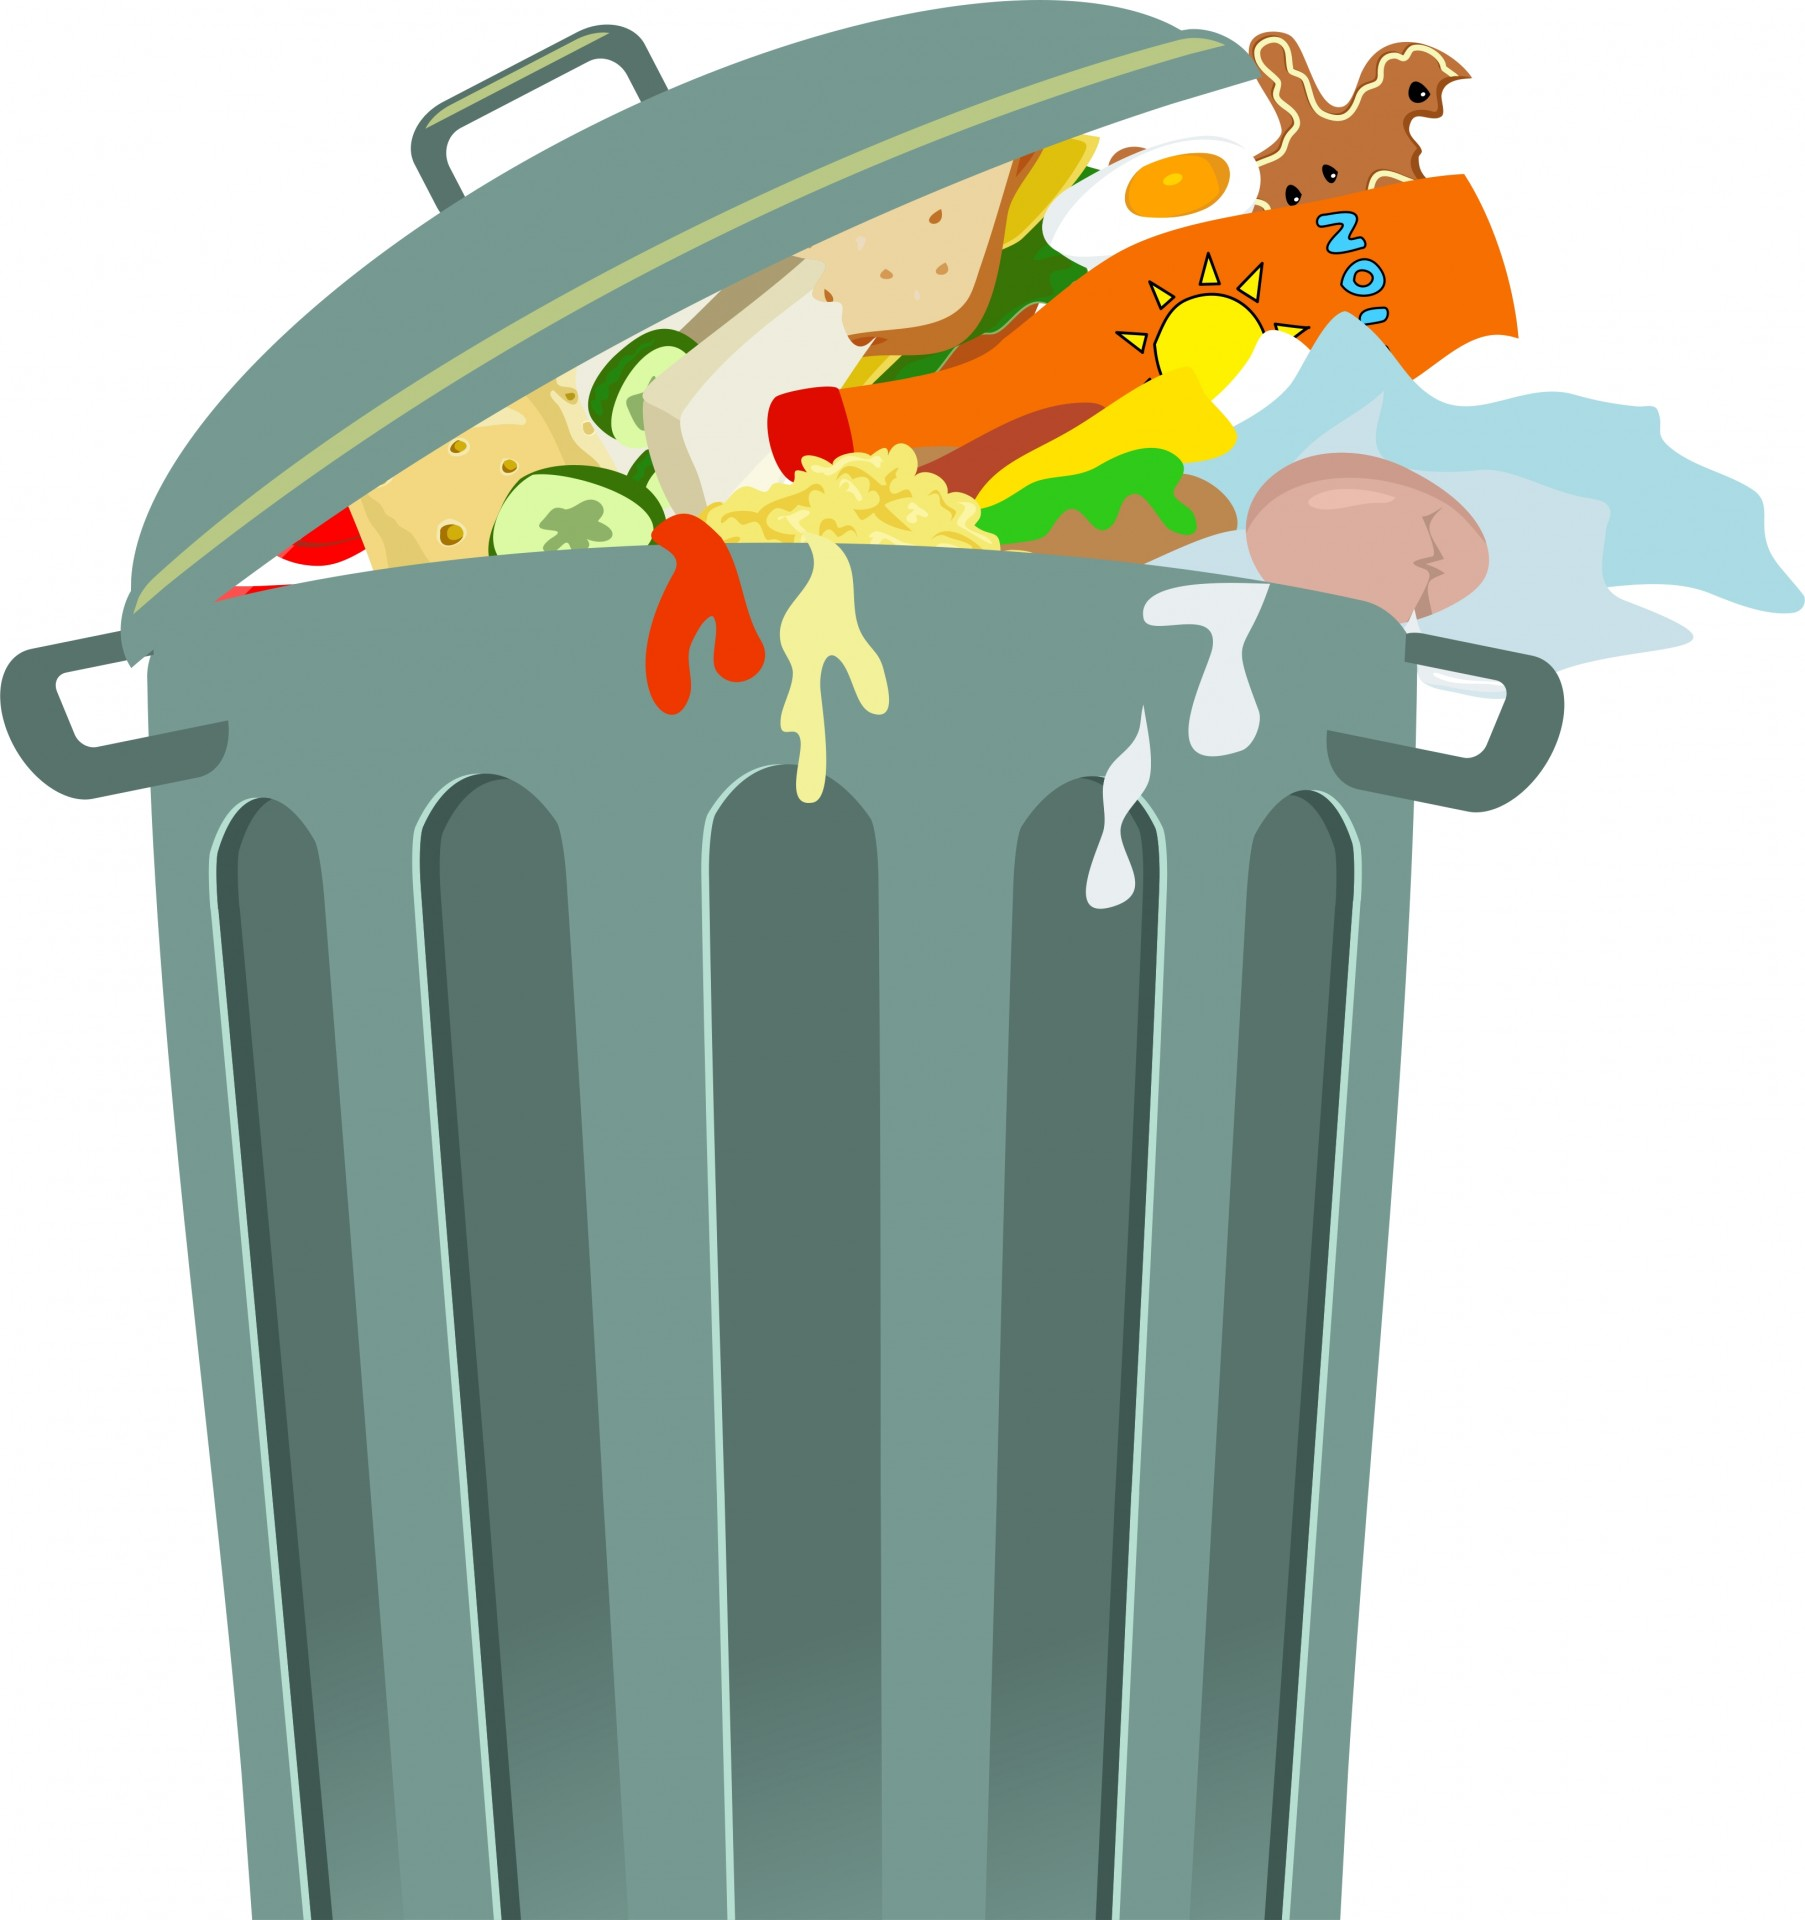 Free trash clipart picture Trash Can Clip Art Free Stock Photo - Public Domain Pictures picture